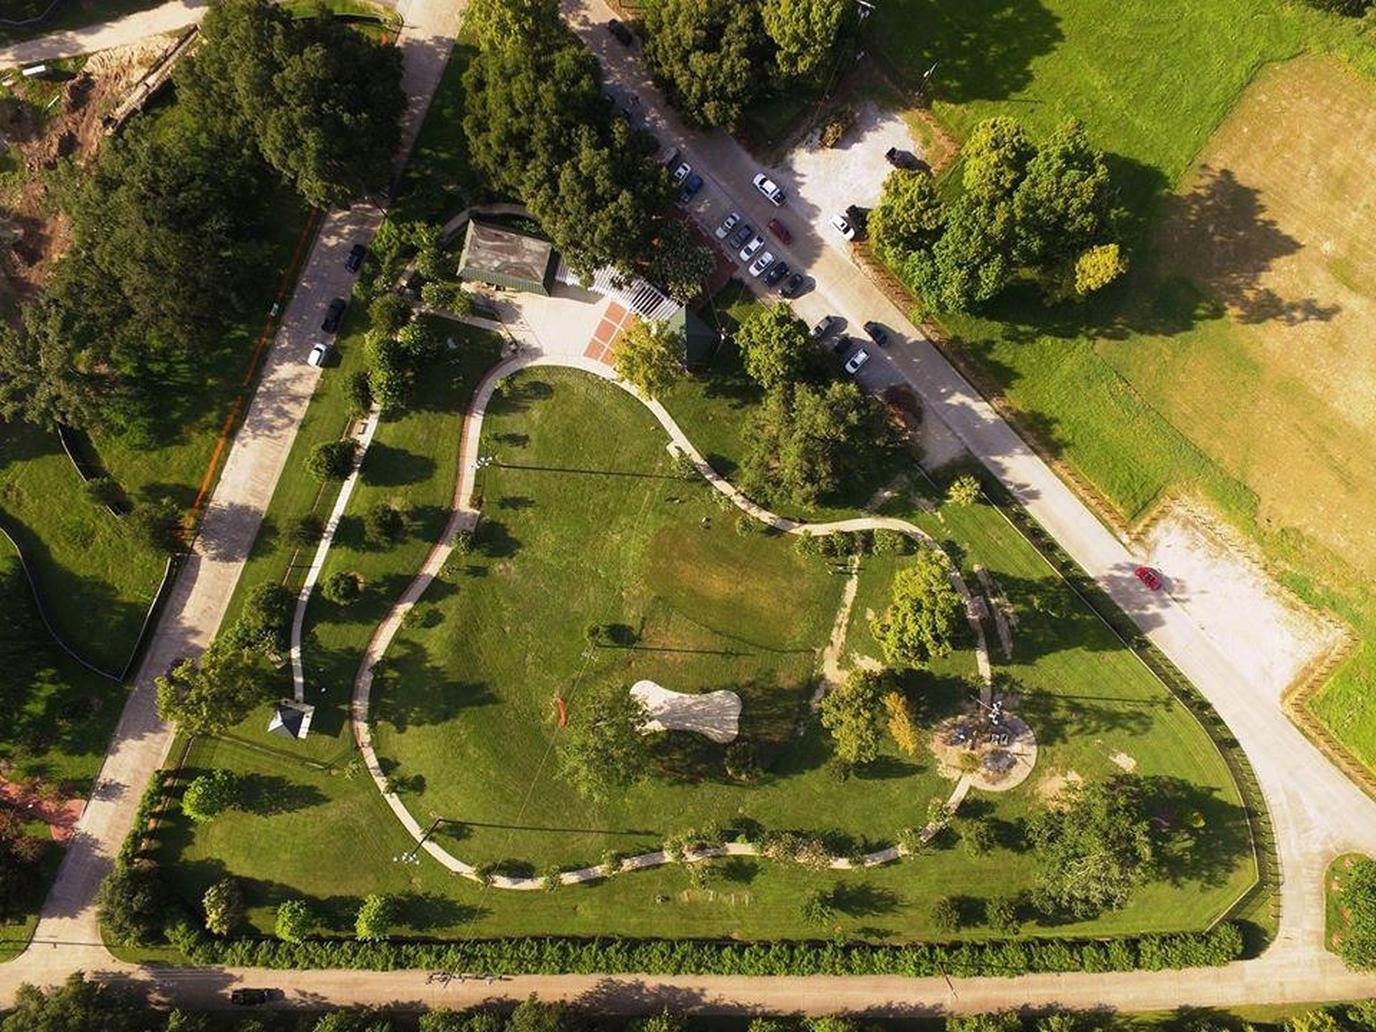 An Aerial Photo of the NOLA City Bark Park in Dog-Friendly New Orleans.